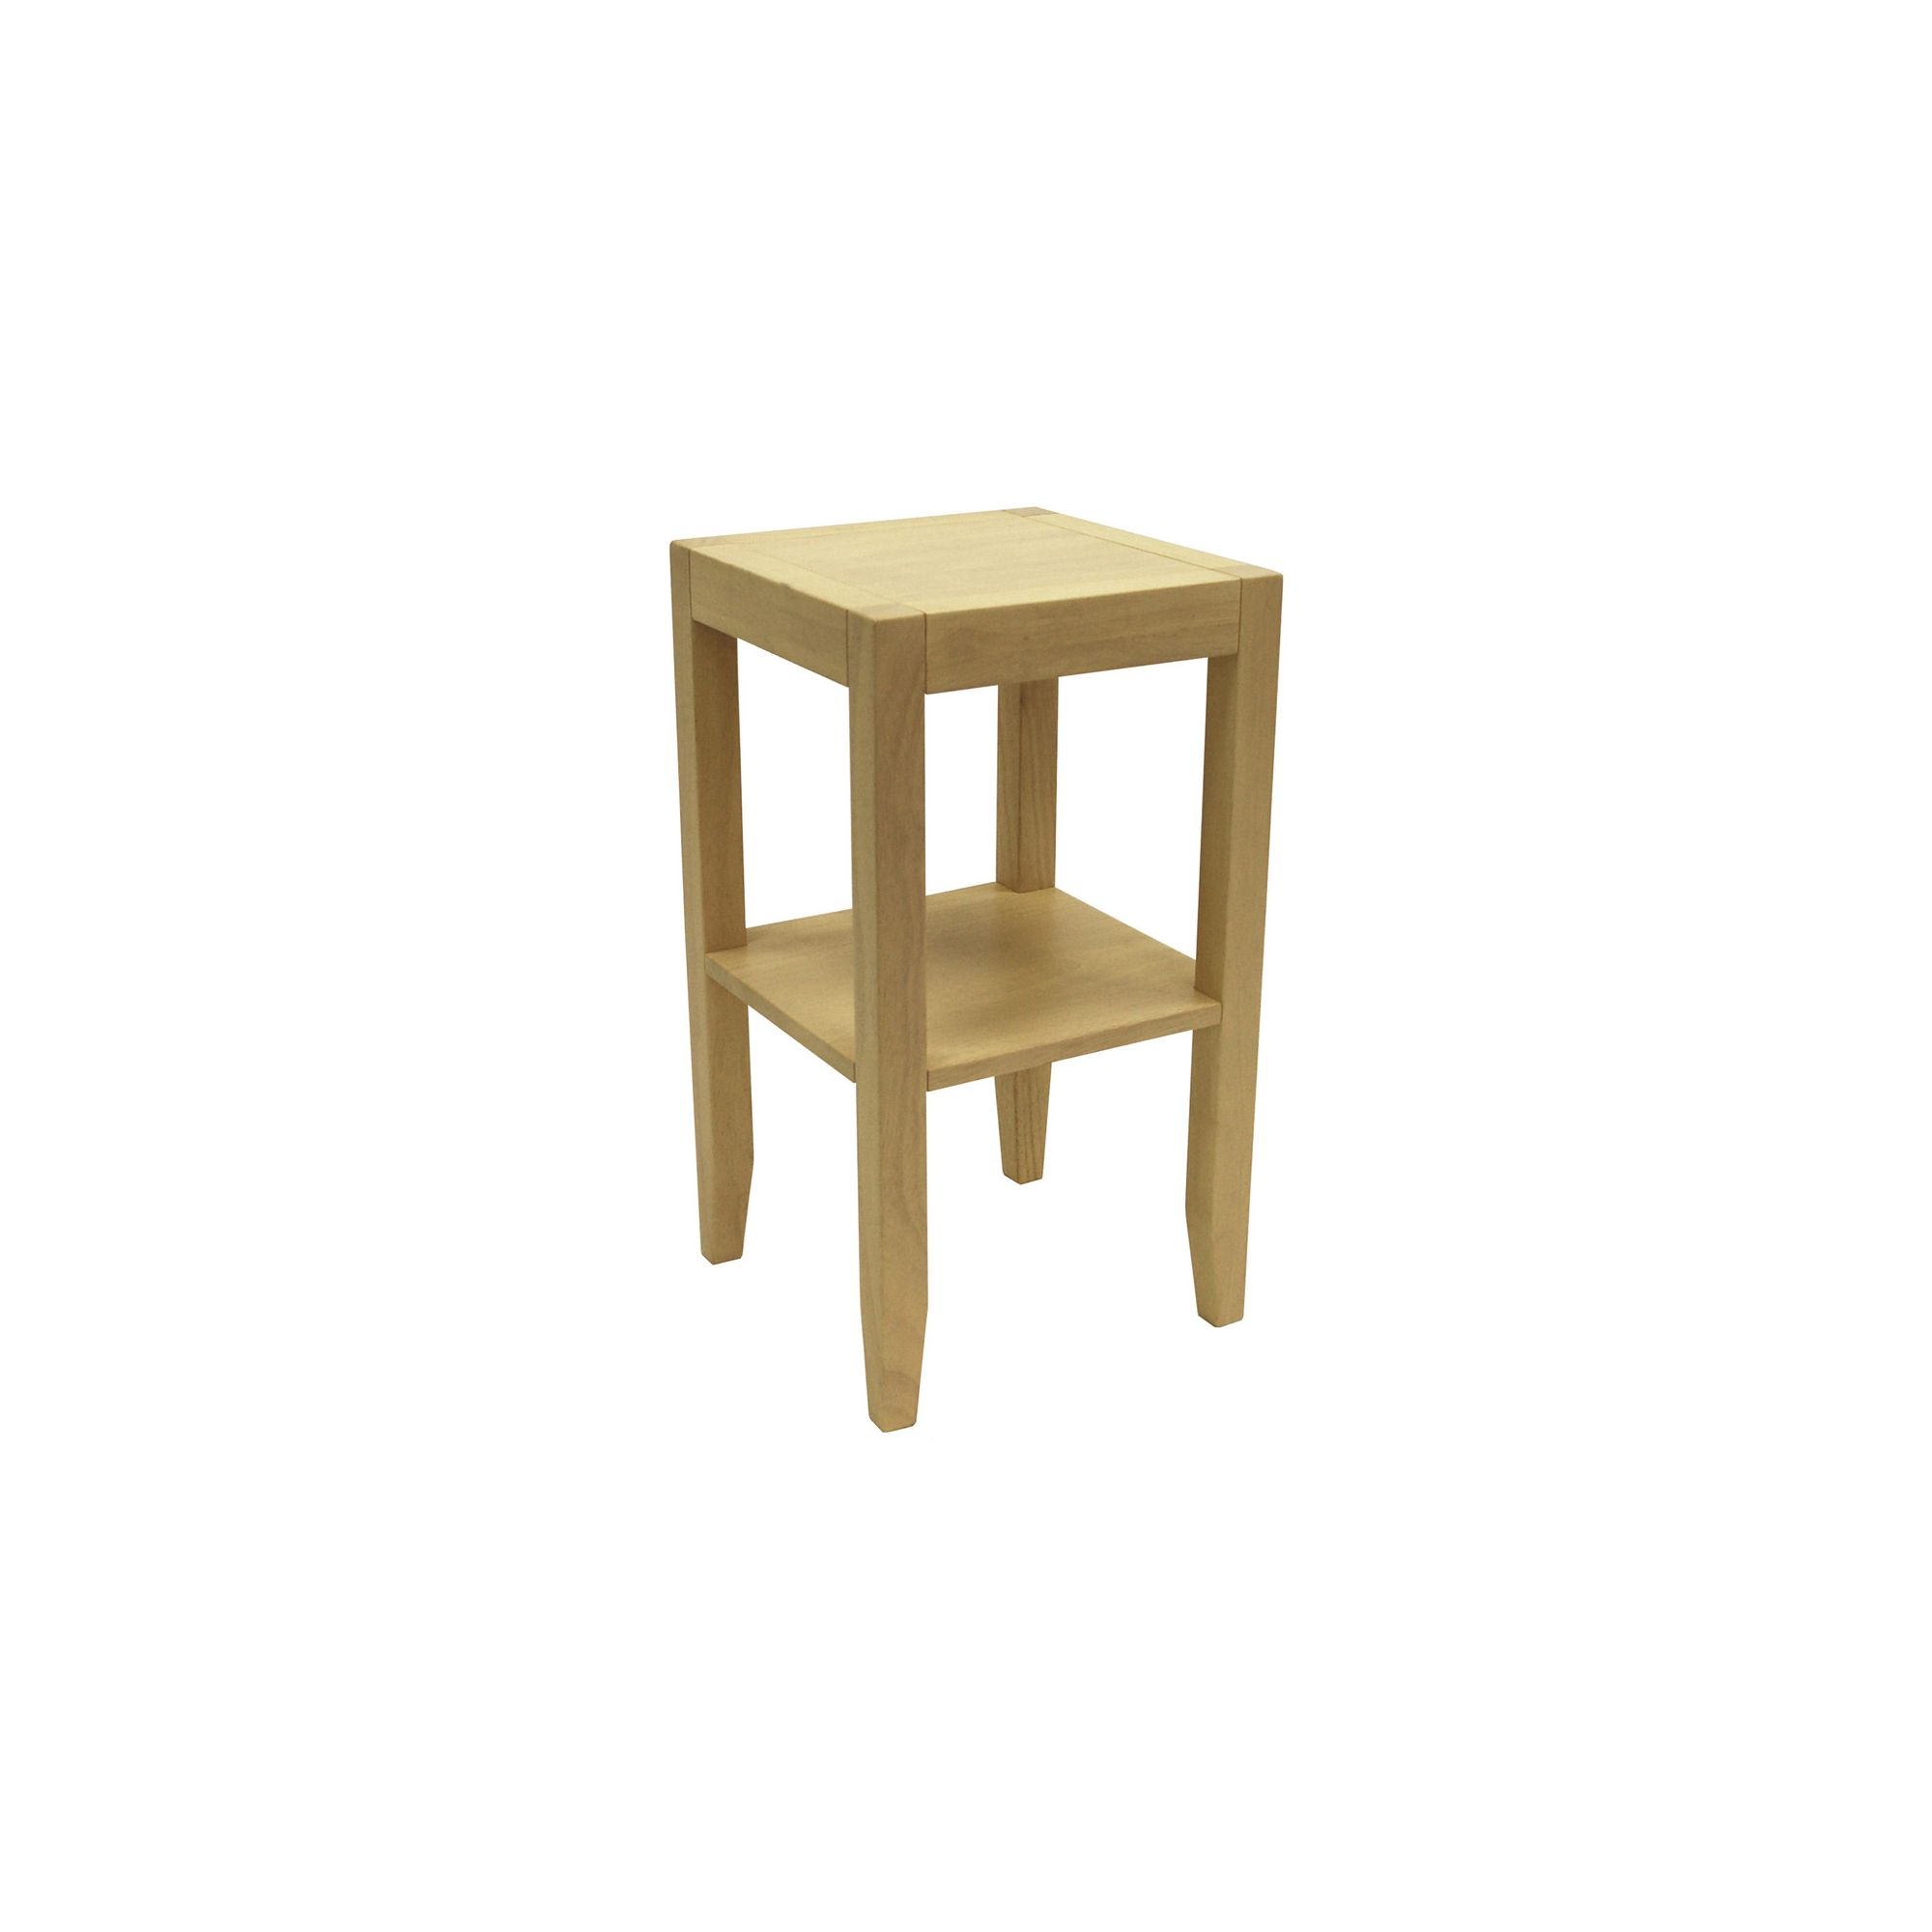 Techstyle Solid Wood End / Telephone Table - Natural